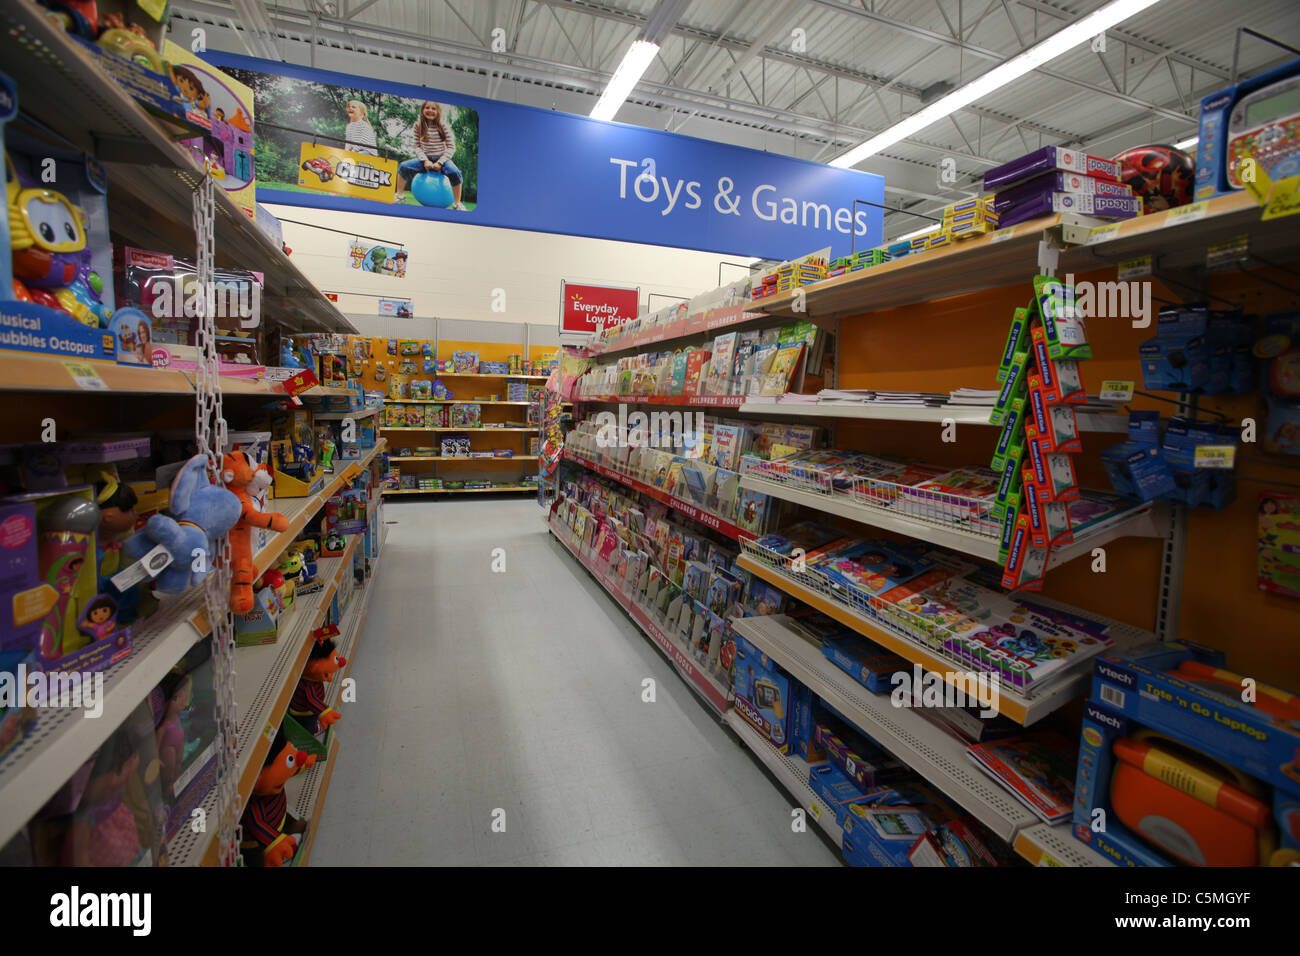 Toys For Walmart : Walmart toys and games section in supercentre